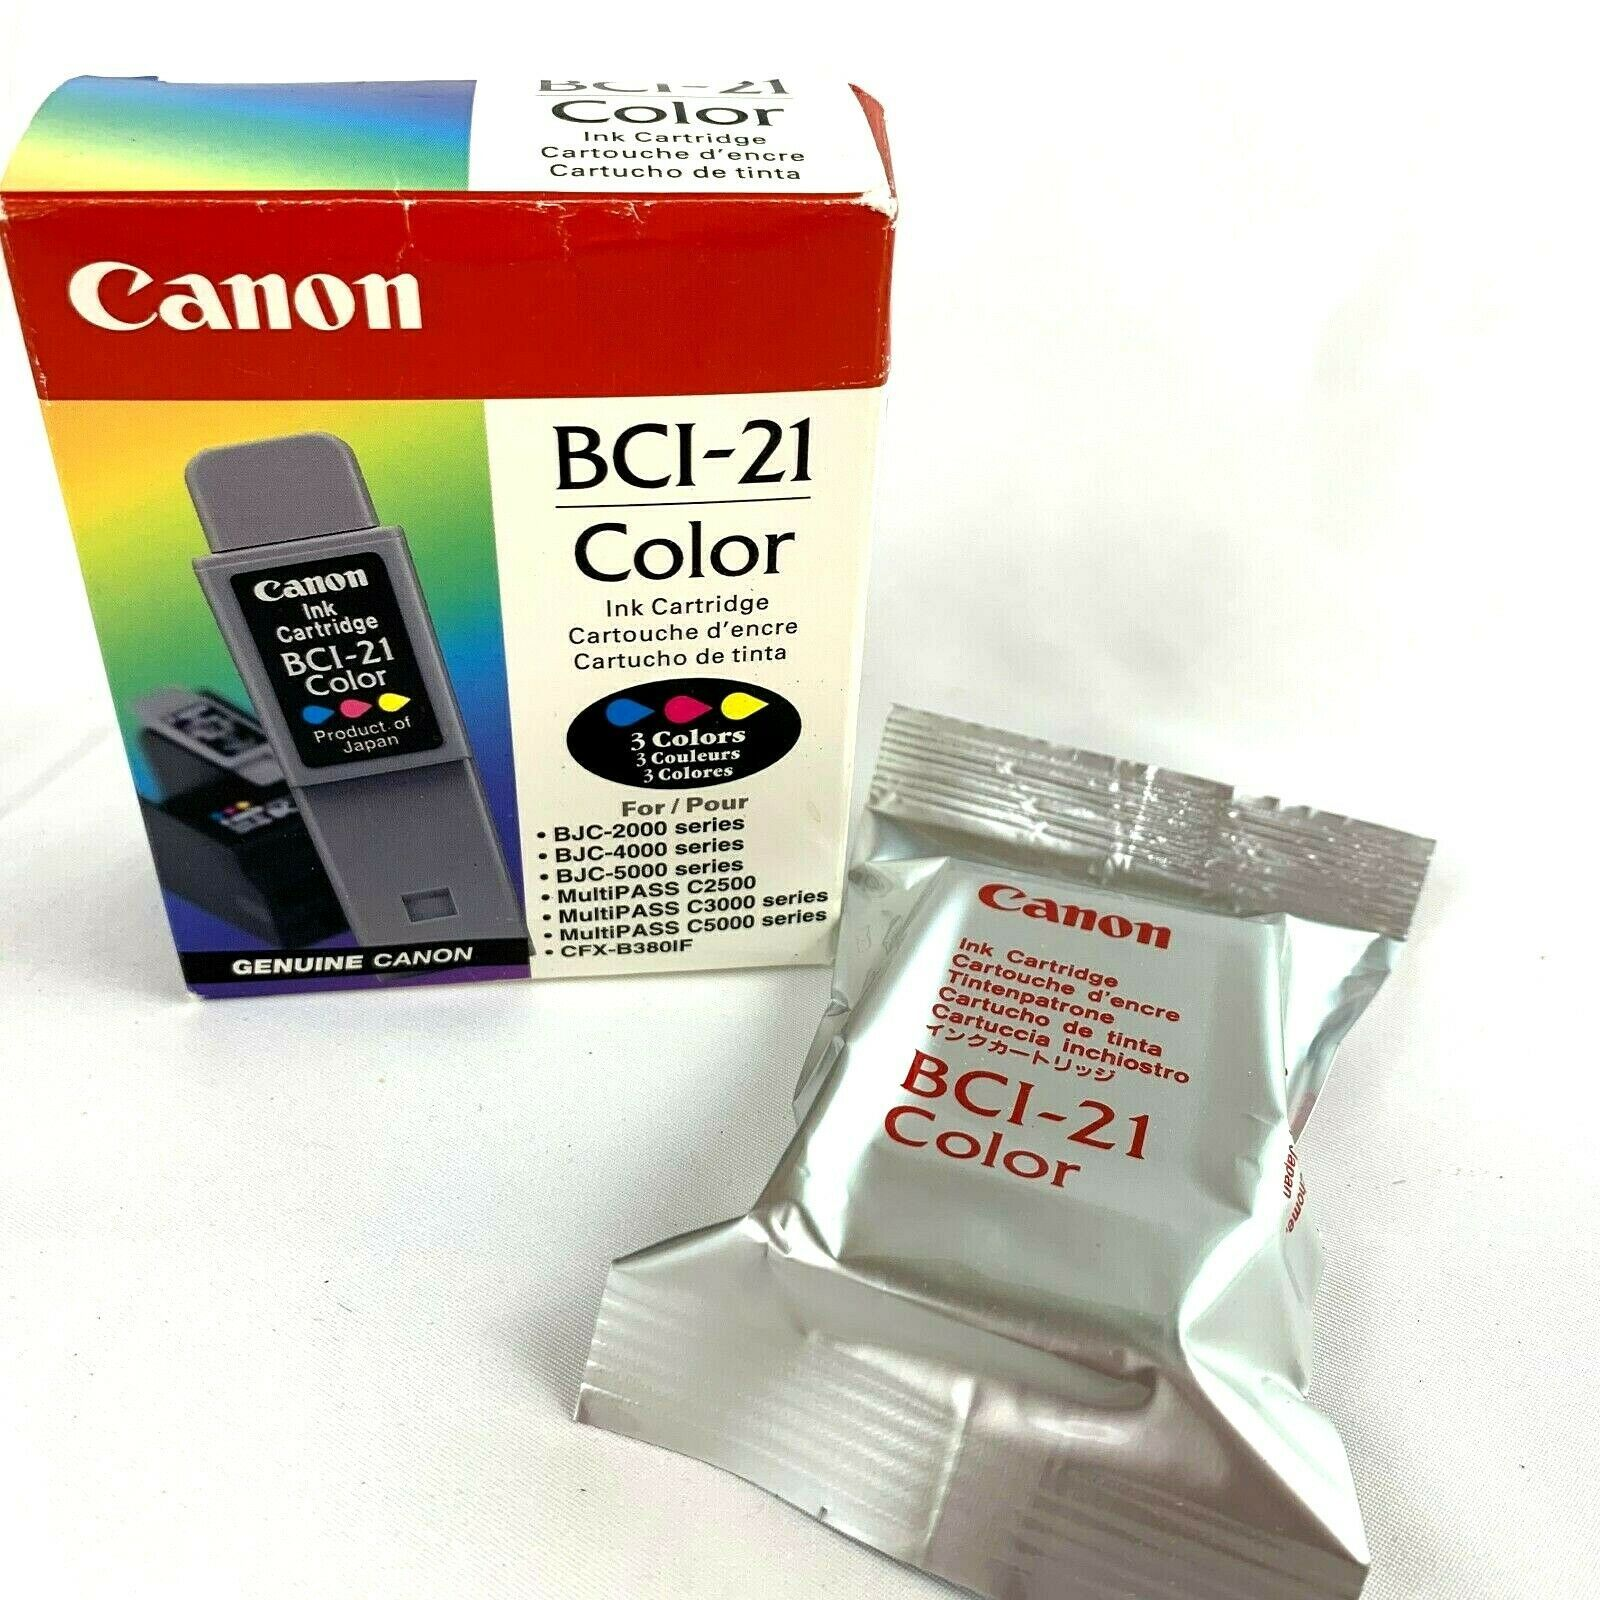 Genuine CANON BCI-21 Color ink cartridge sealed in the box  - $8.61